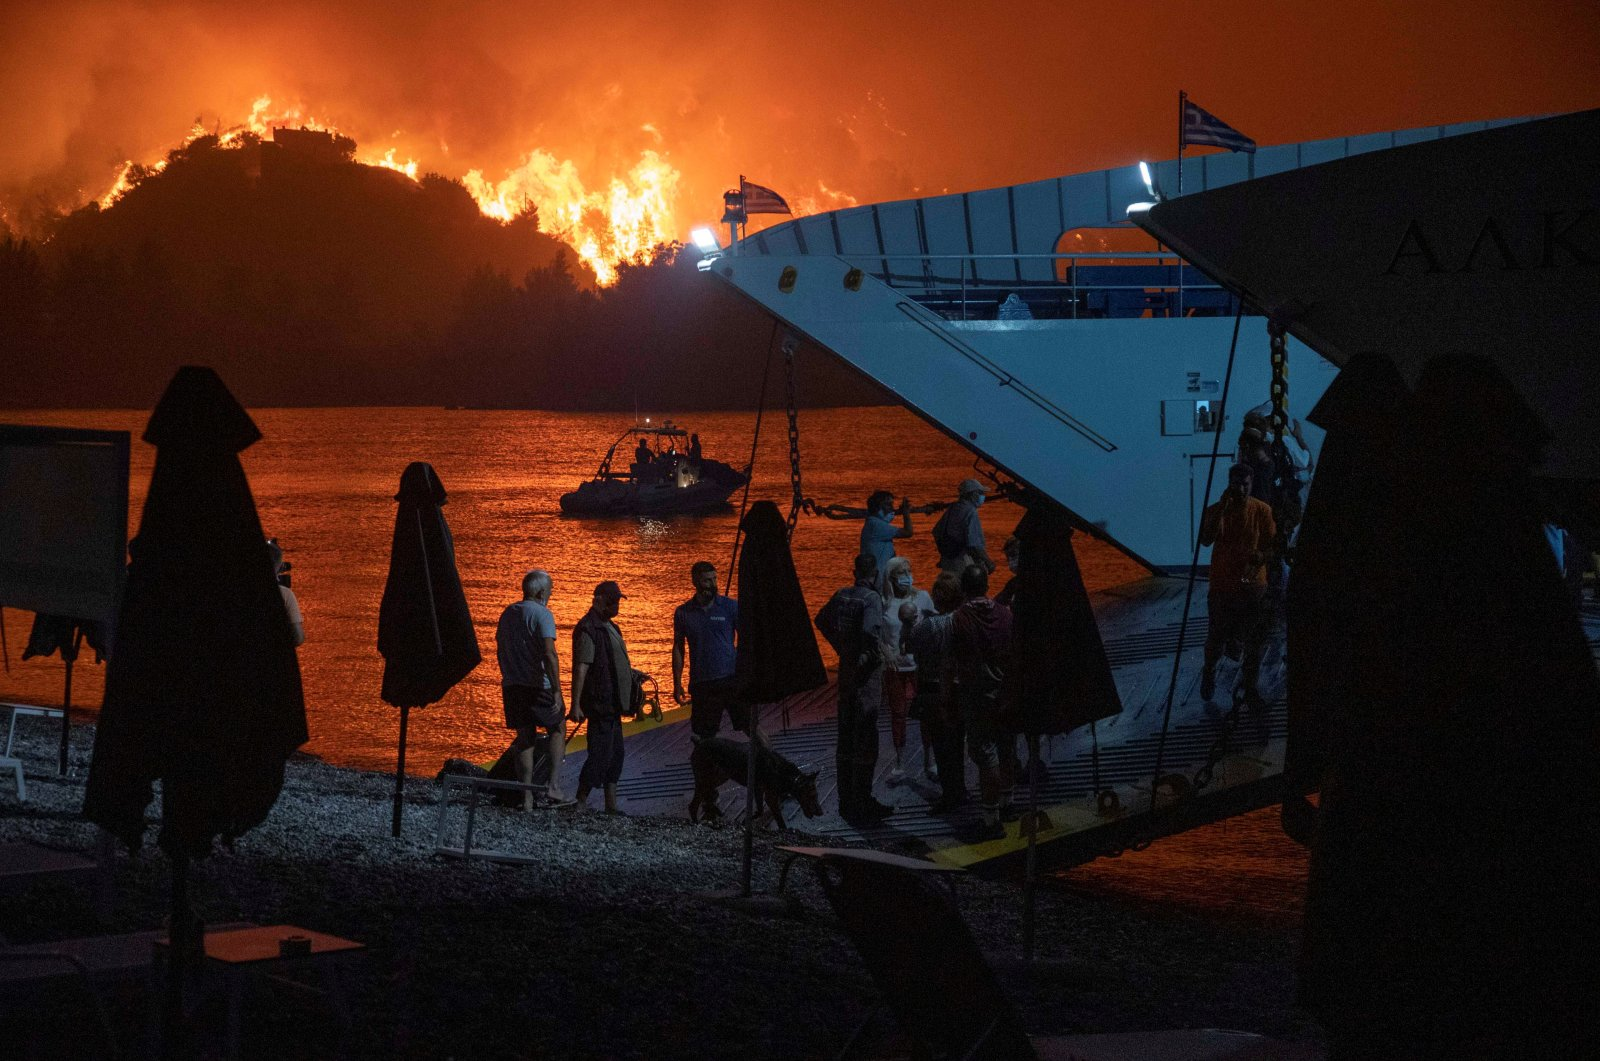 People board a ferry during evacuation as a wildfire burns in the village of Limni, on the island of Evia, Greece, Aug. 6, 2021. (Reuters Photo)